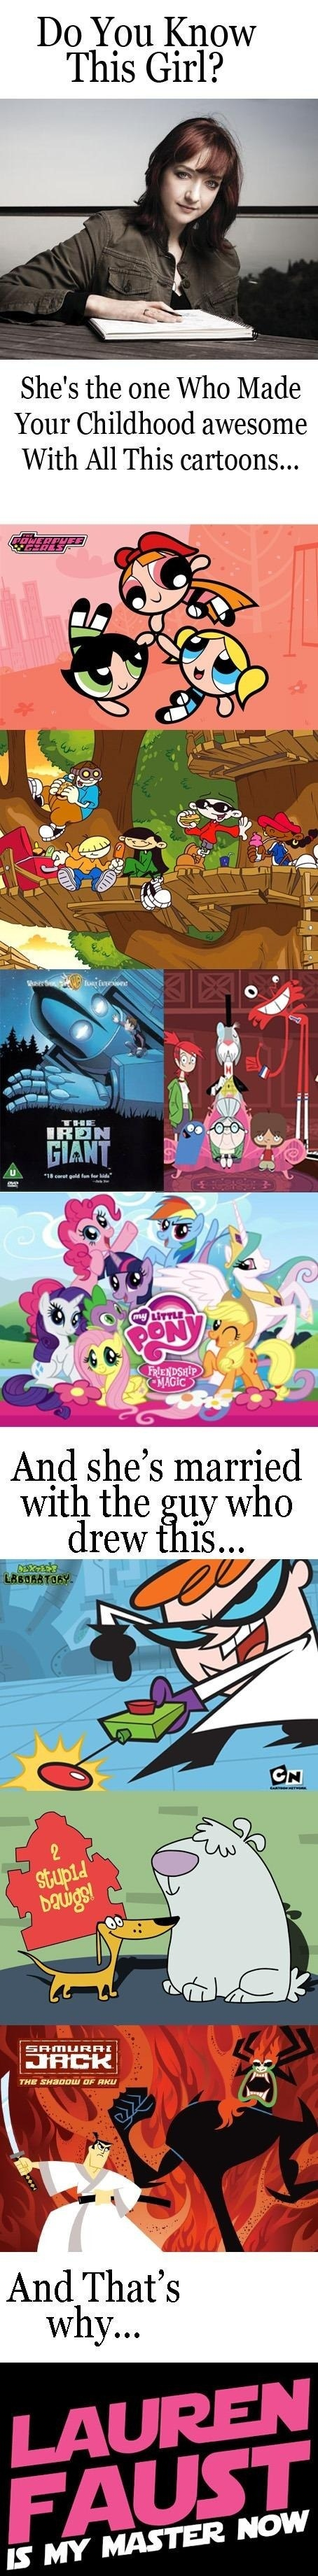 Lauren Faust is Awesome